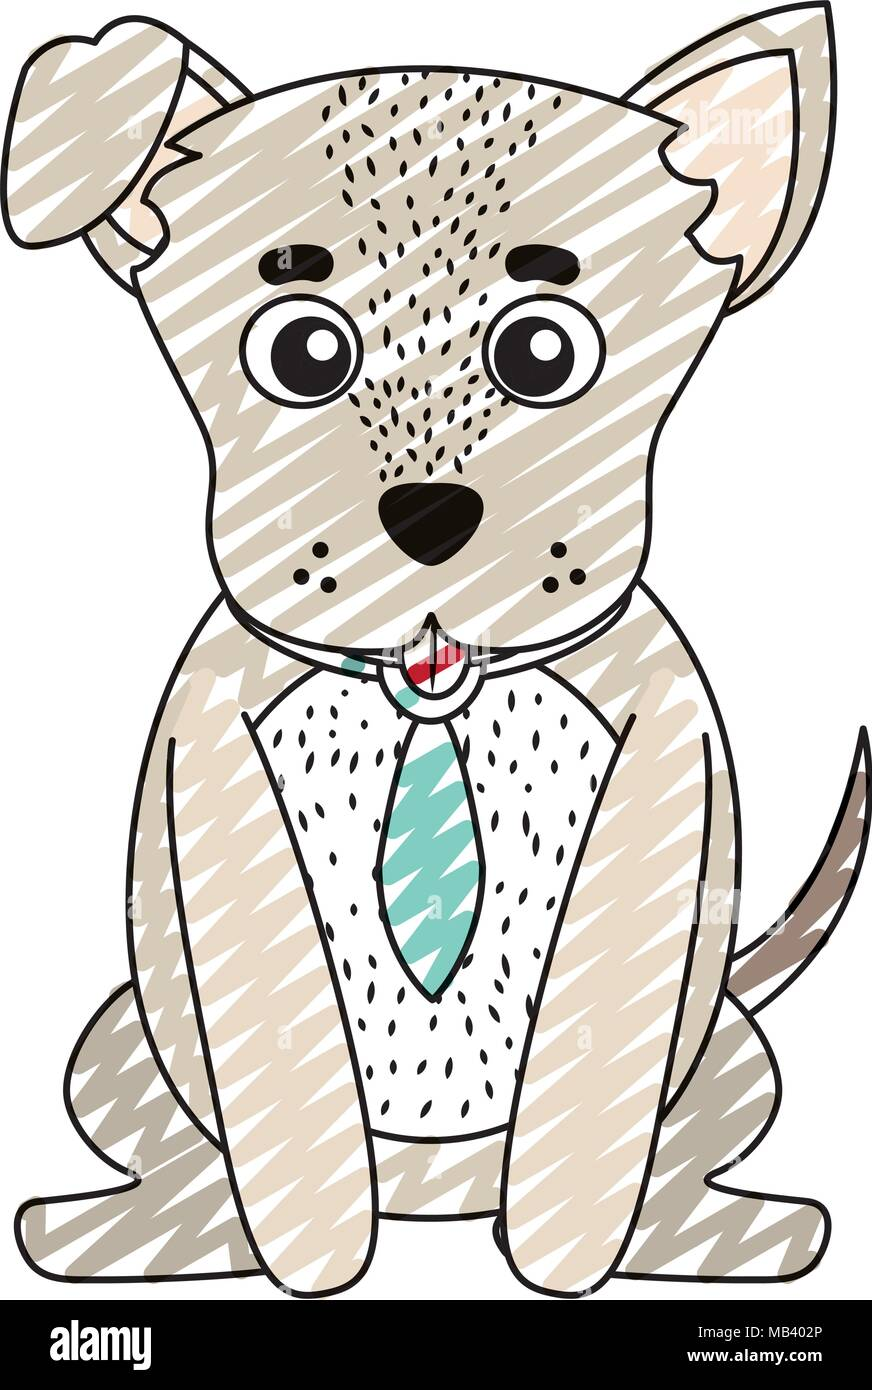 doodle cute dog pet animal with tie - Stock Image